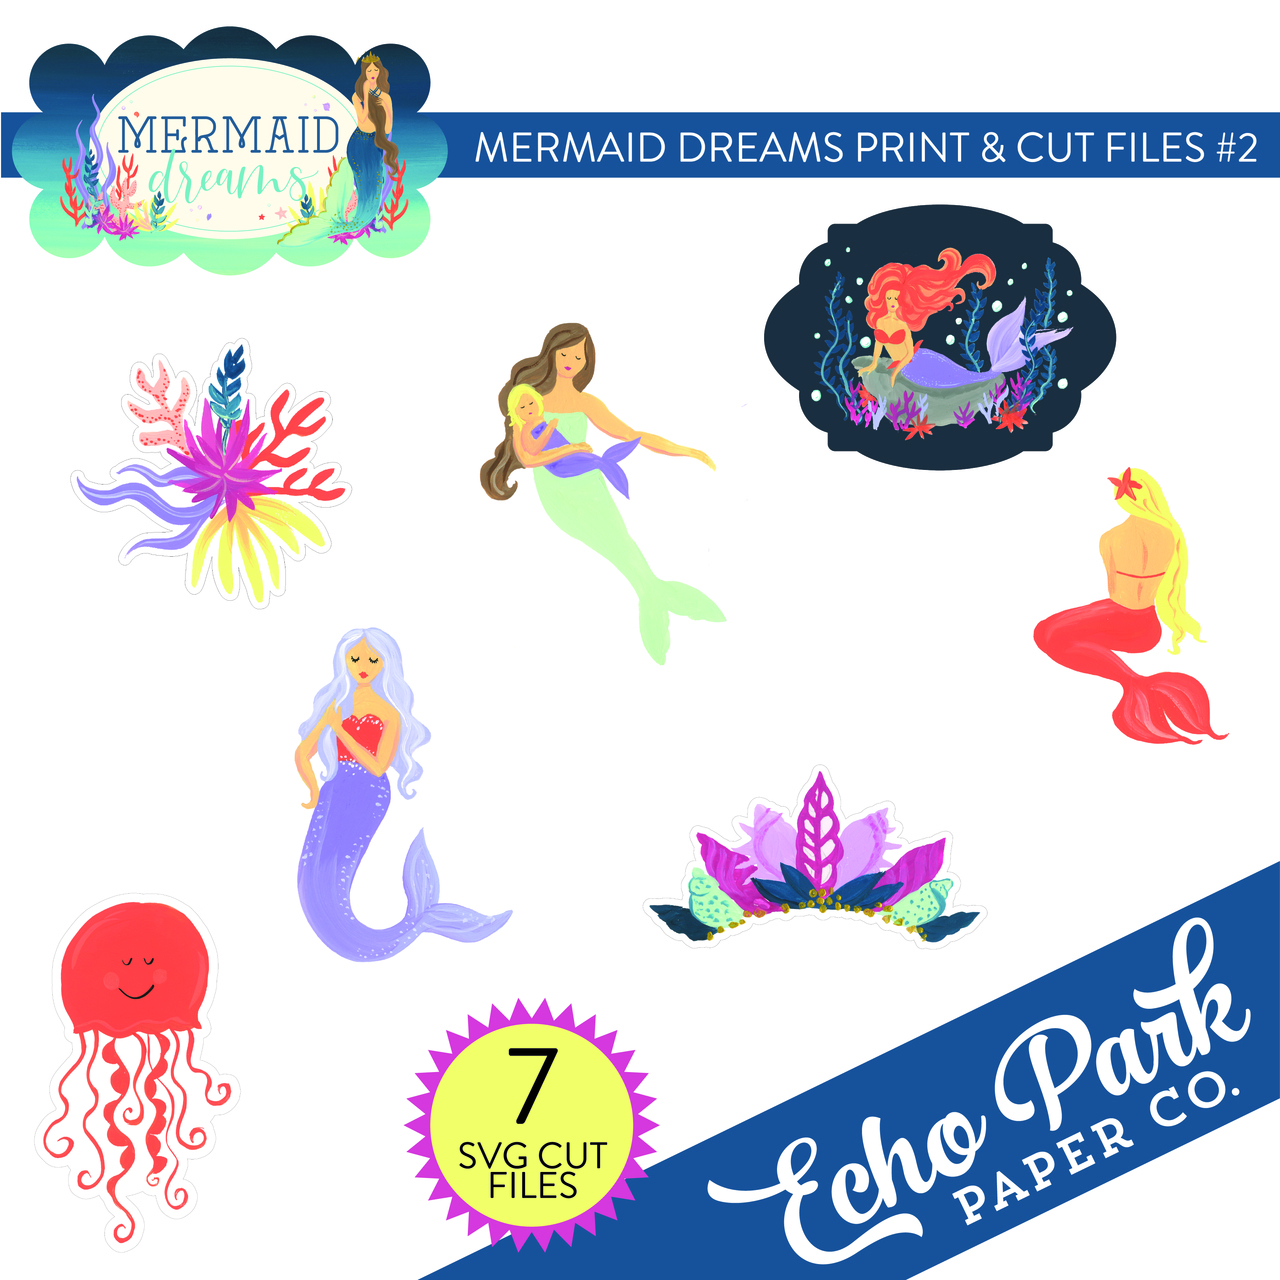 Mermaid Dreams Print & Cut Files #2